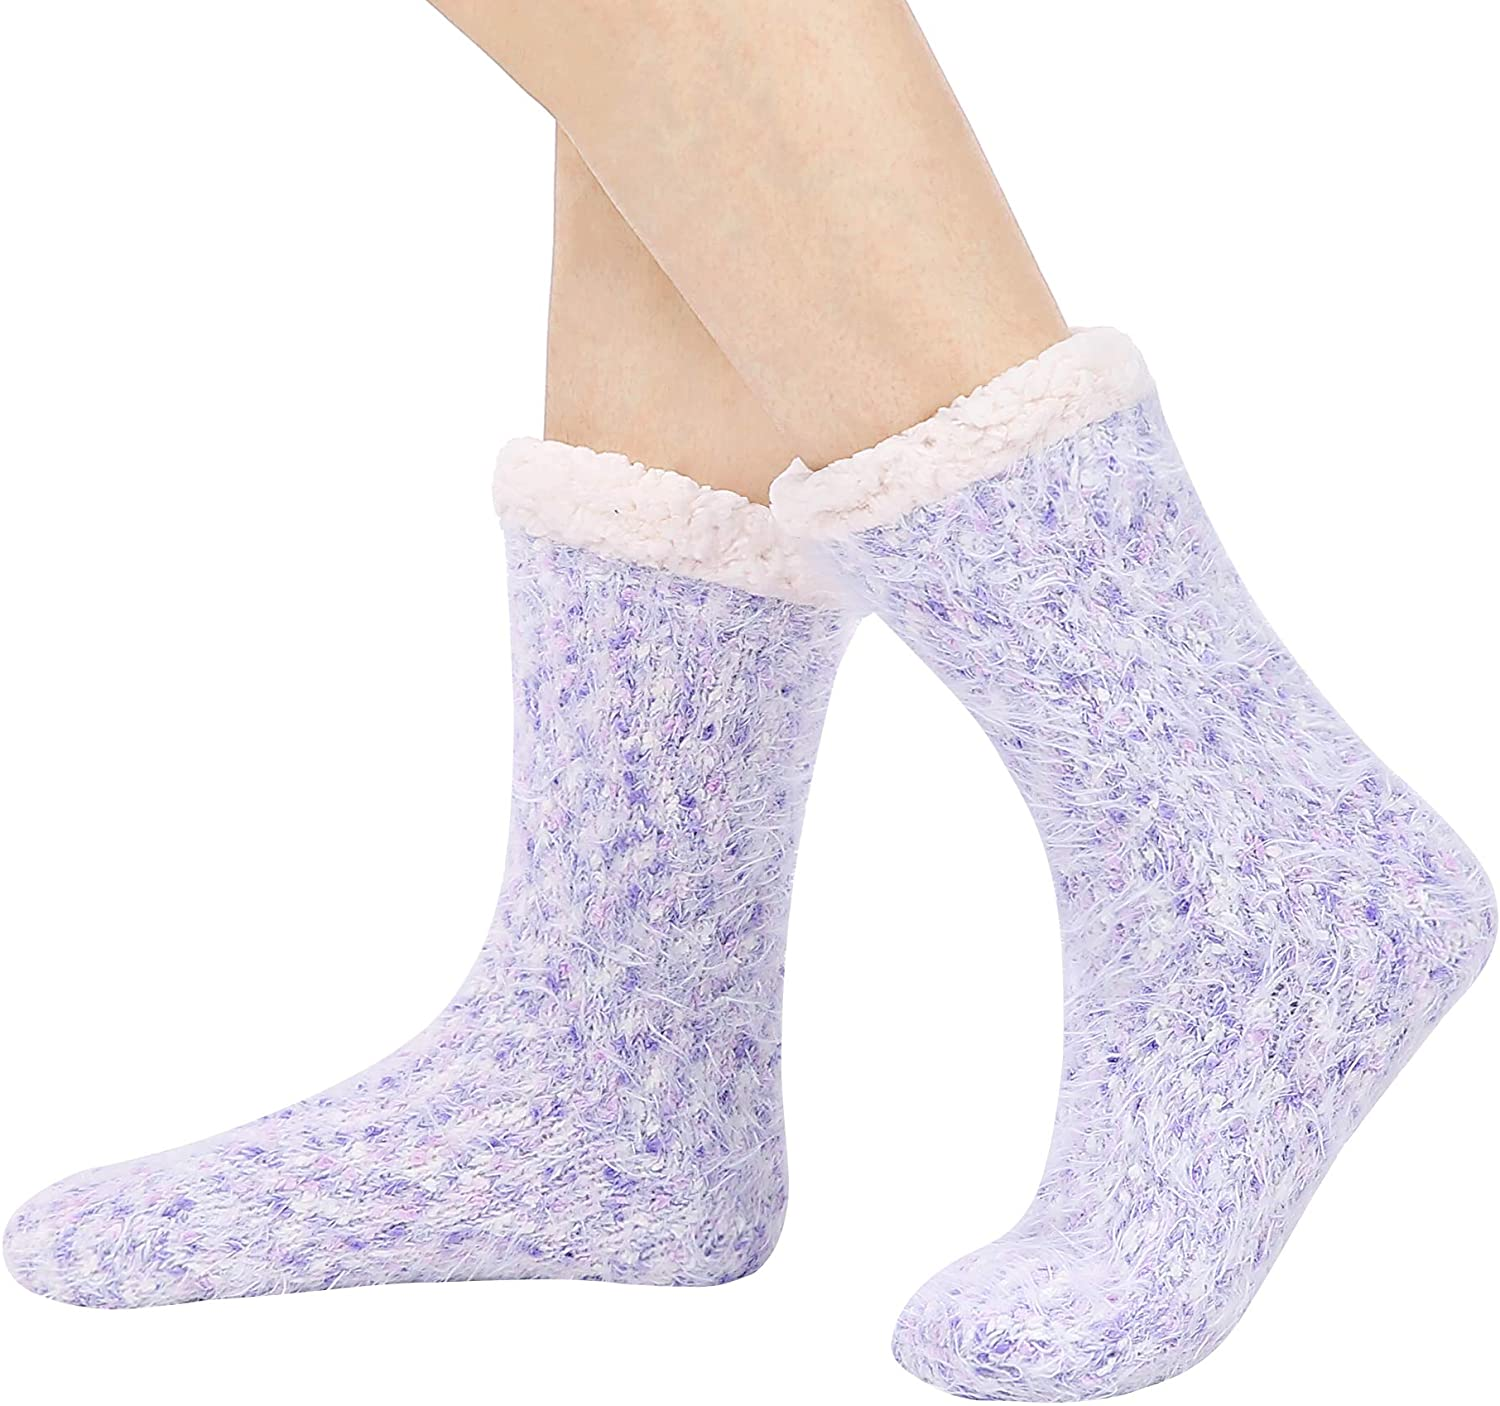 Winter Warm Womens Sherpa Fuzzy Slipper Socks with Silicone Grippers